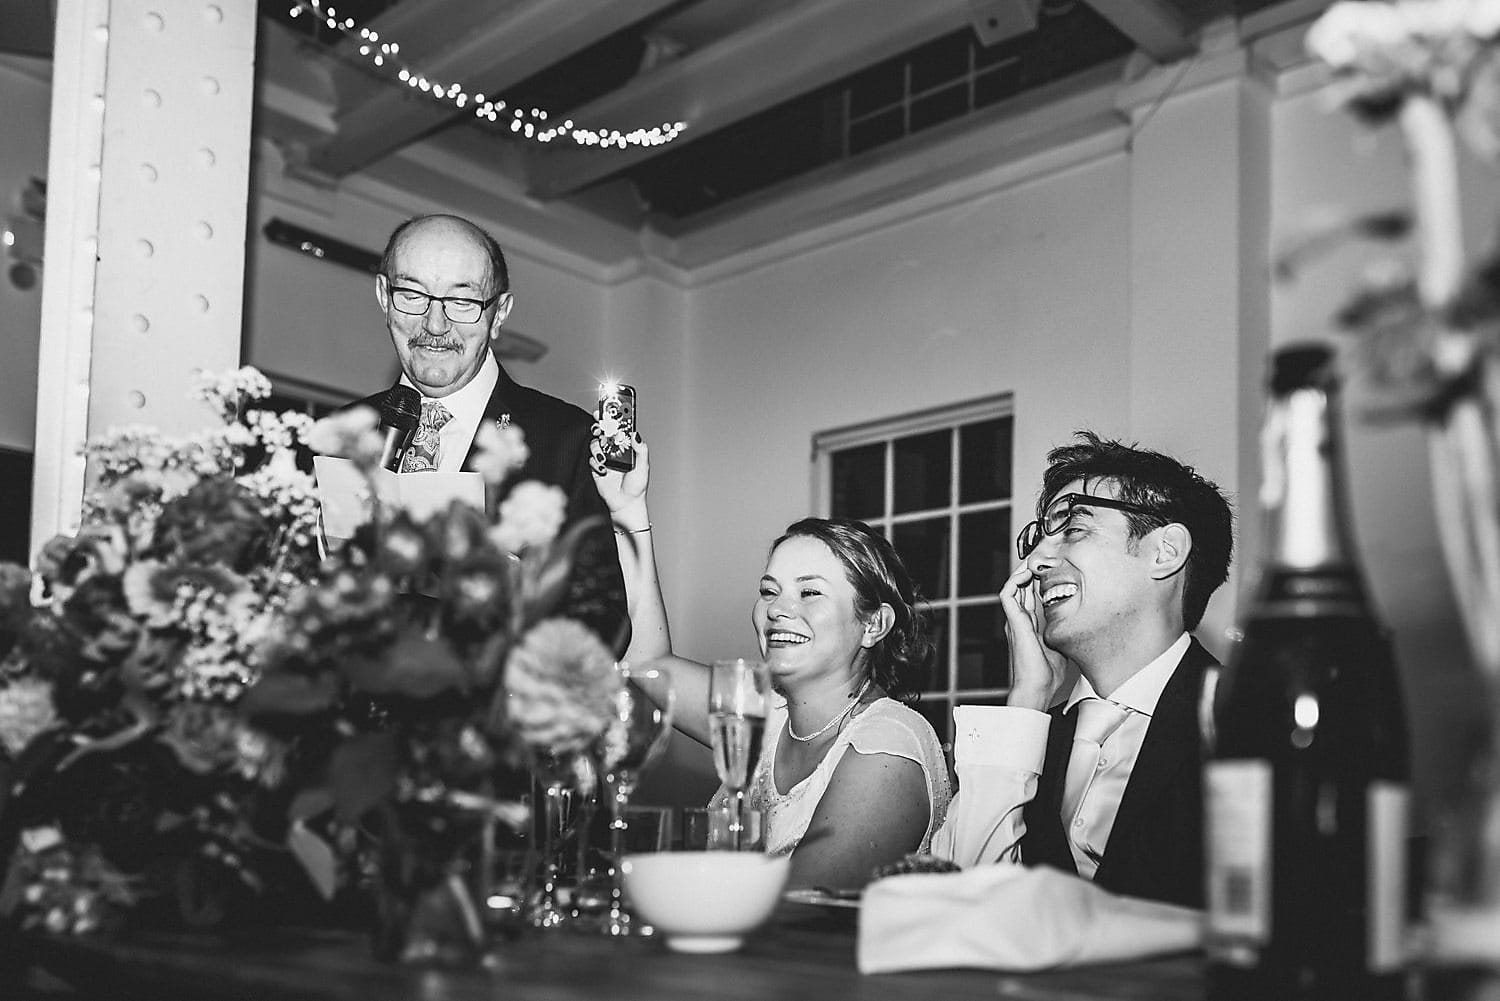 The father of the bride makes his speech, as the bride waves a lighter in the air, laughing